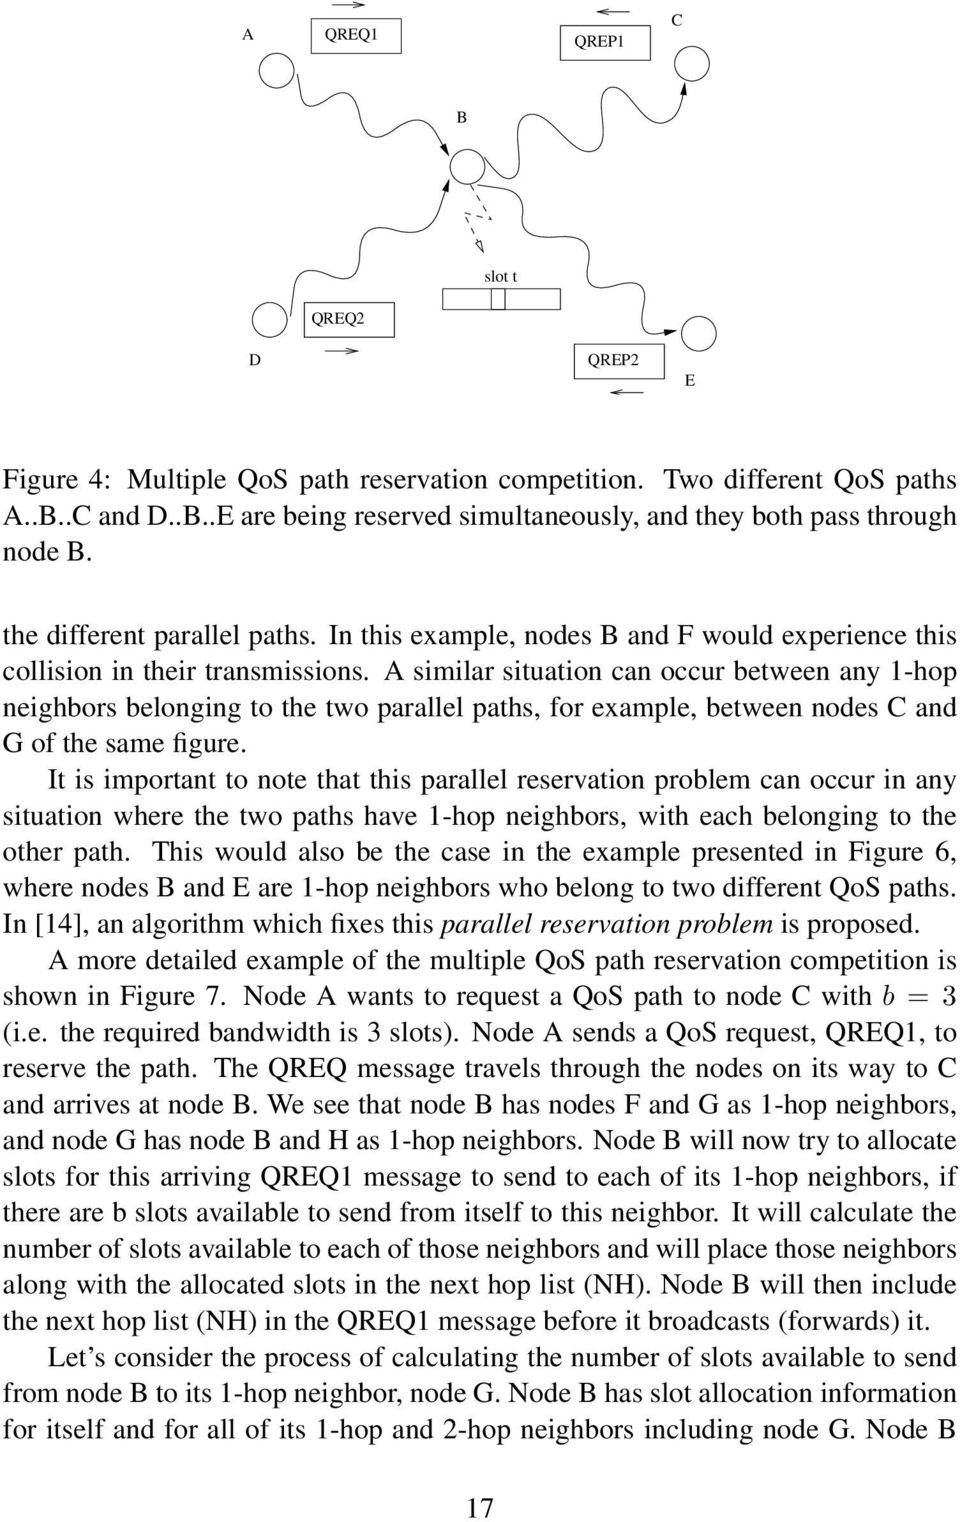 A similar situation can occur between any 1-hop neighbors belonging to the two parallel paths, for example, between nodes C and G of the same figure.